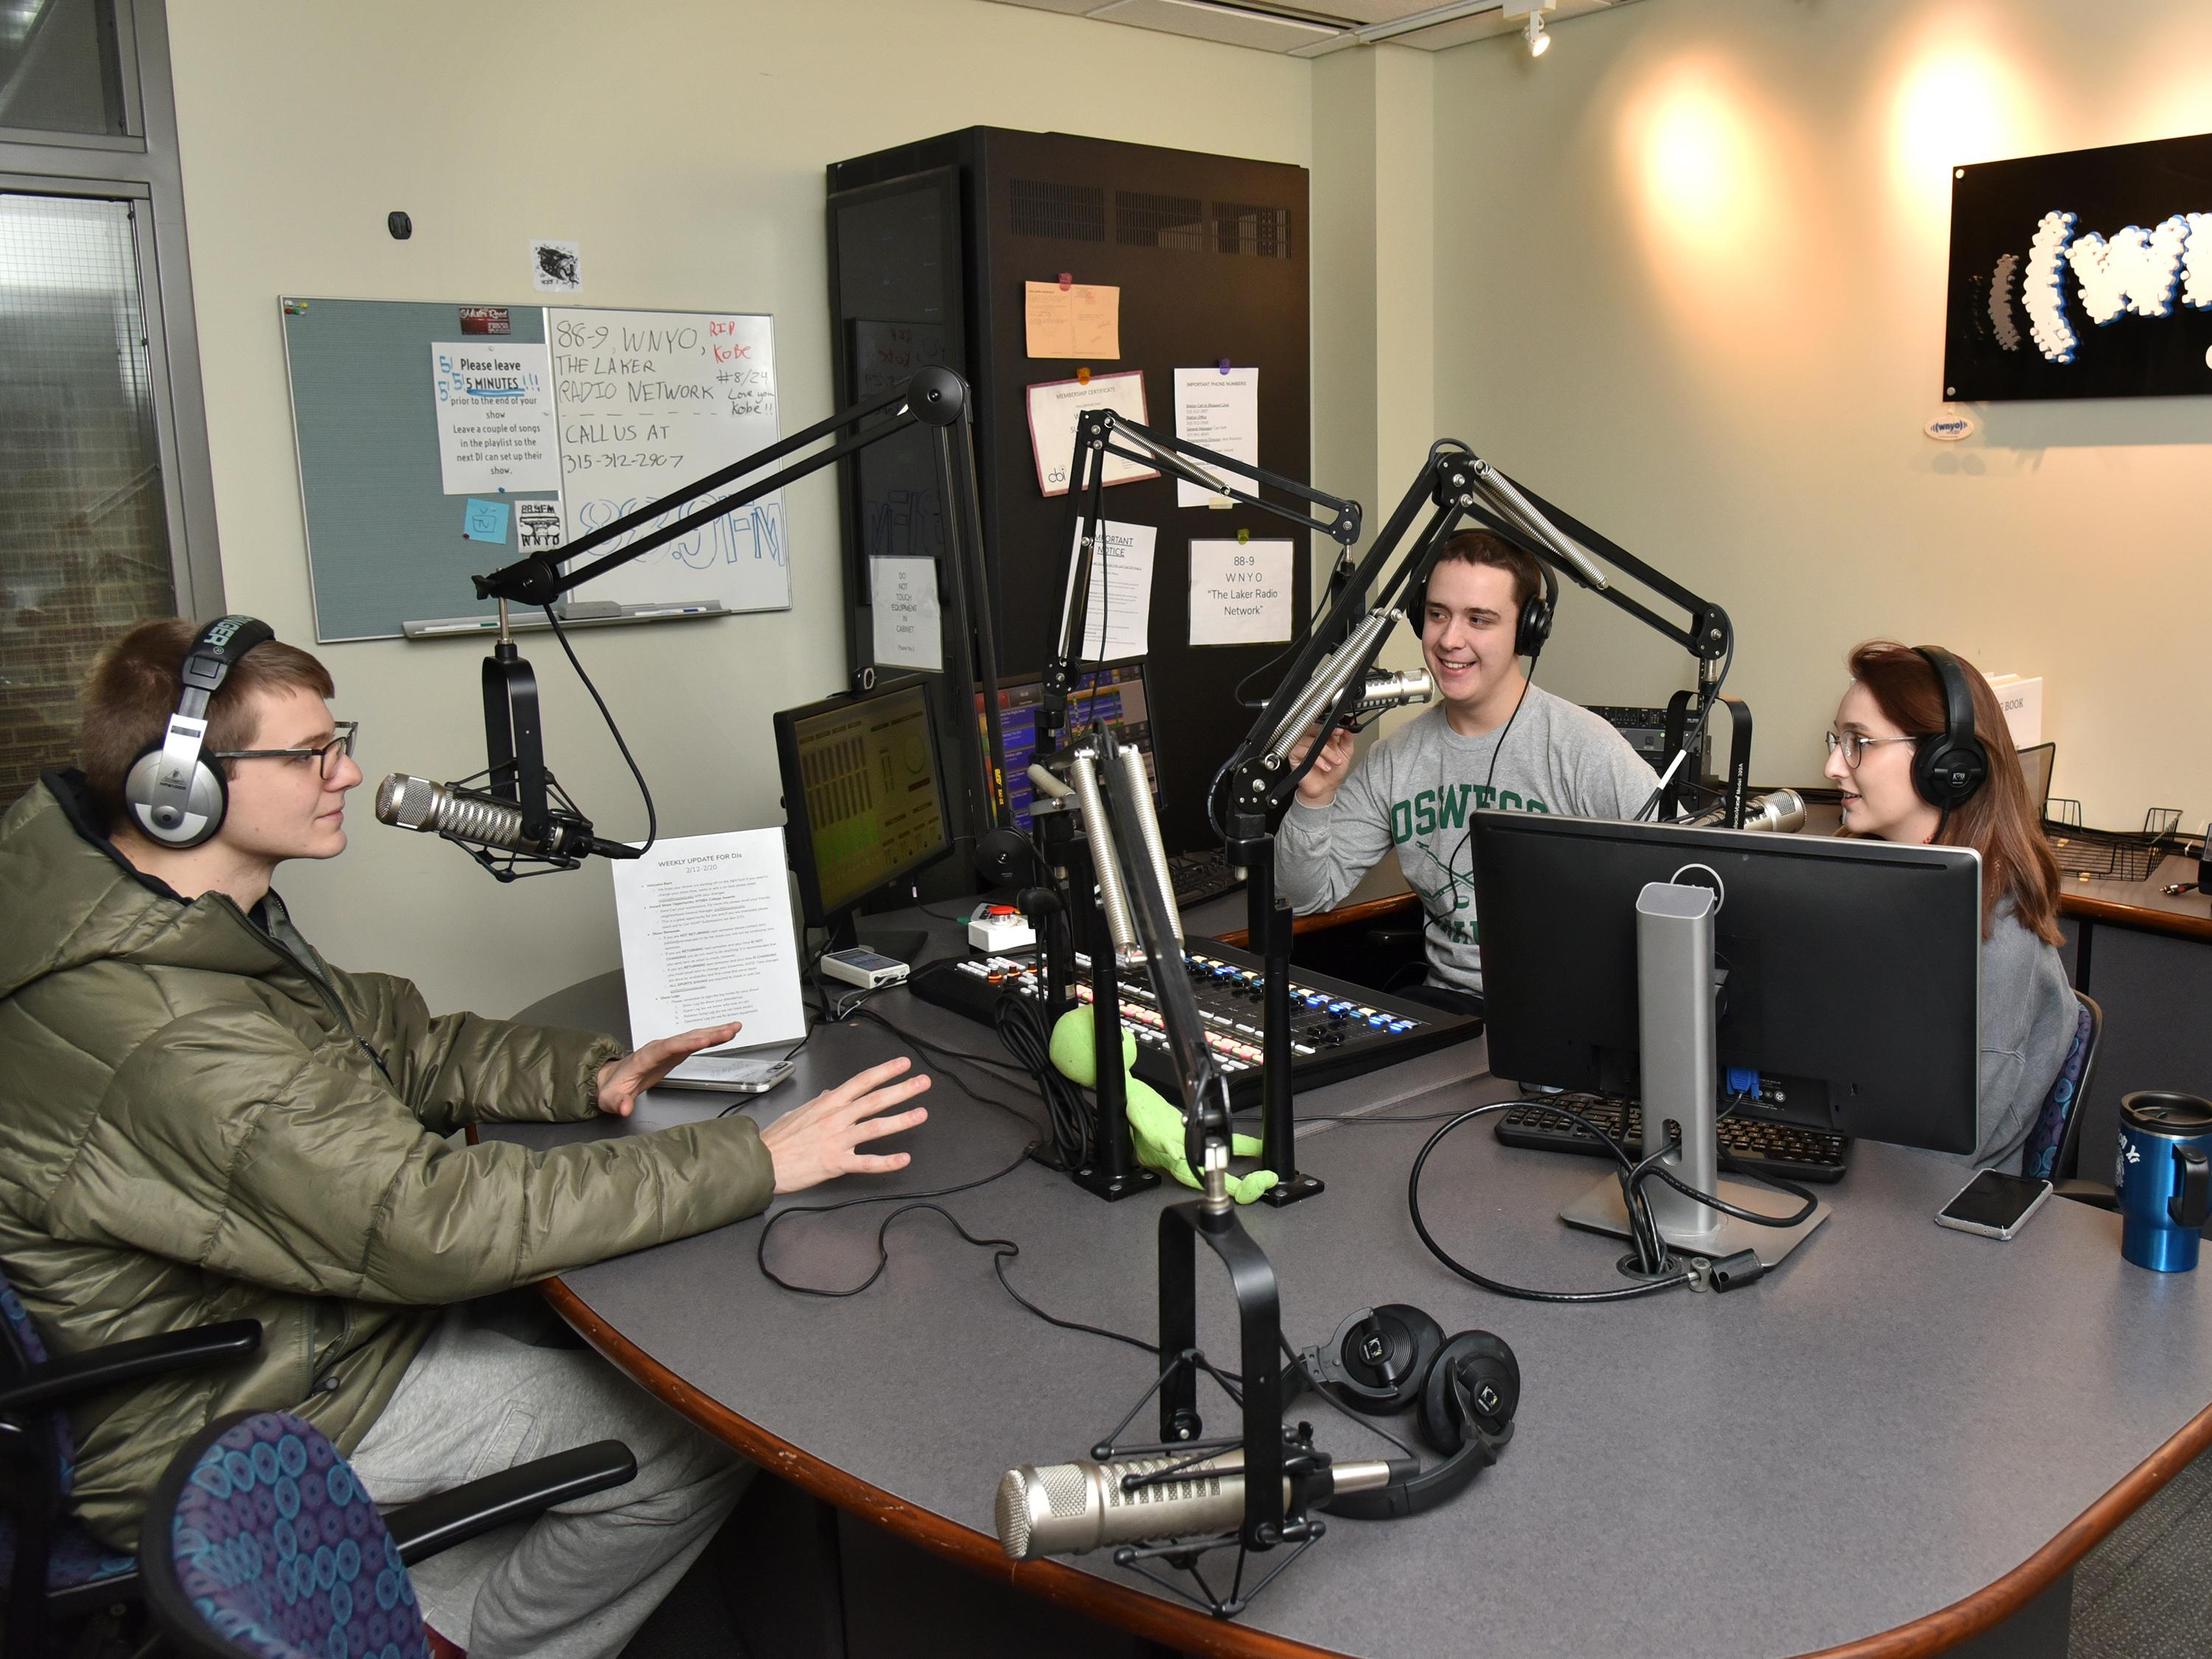 WNYO show Matt and Carl in the morning recently earned a national broadcasting award